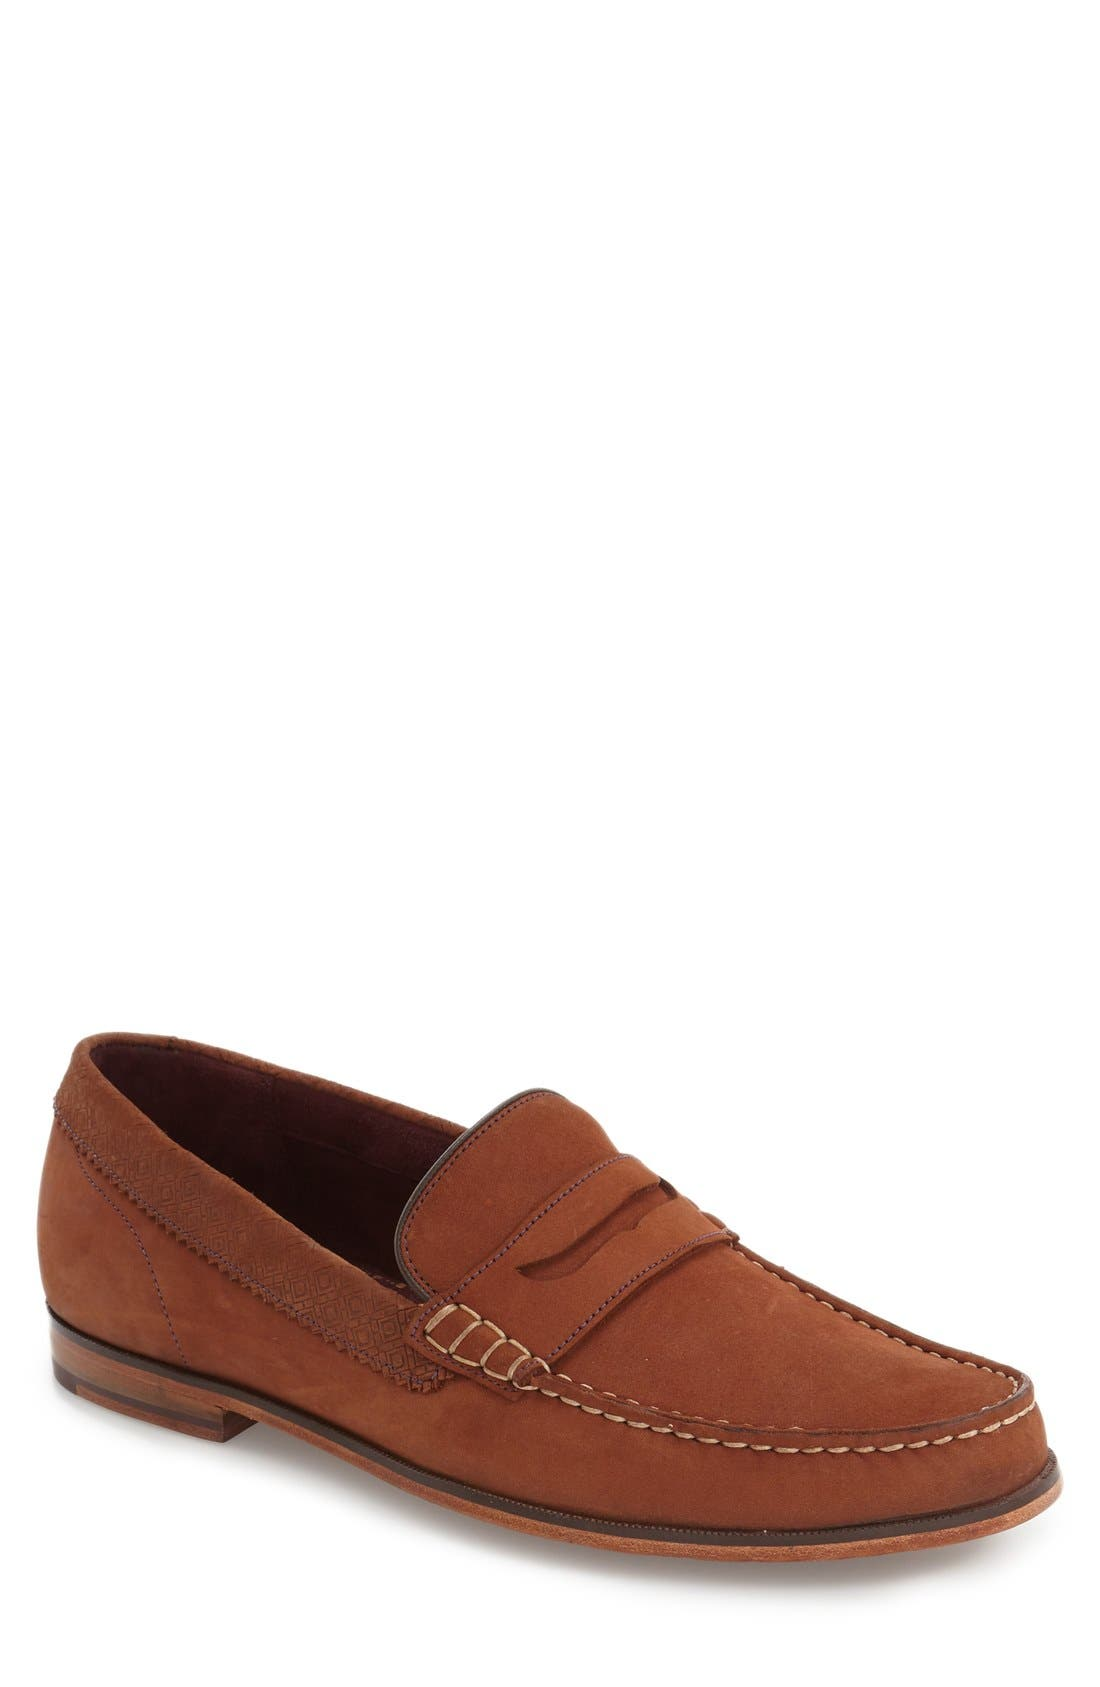 'Miicke 2' Penny Loafer,                             Main thumbnail 1, color,                             Dark Orange